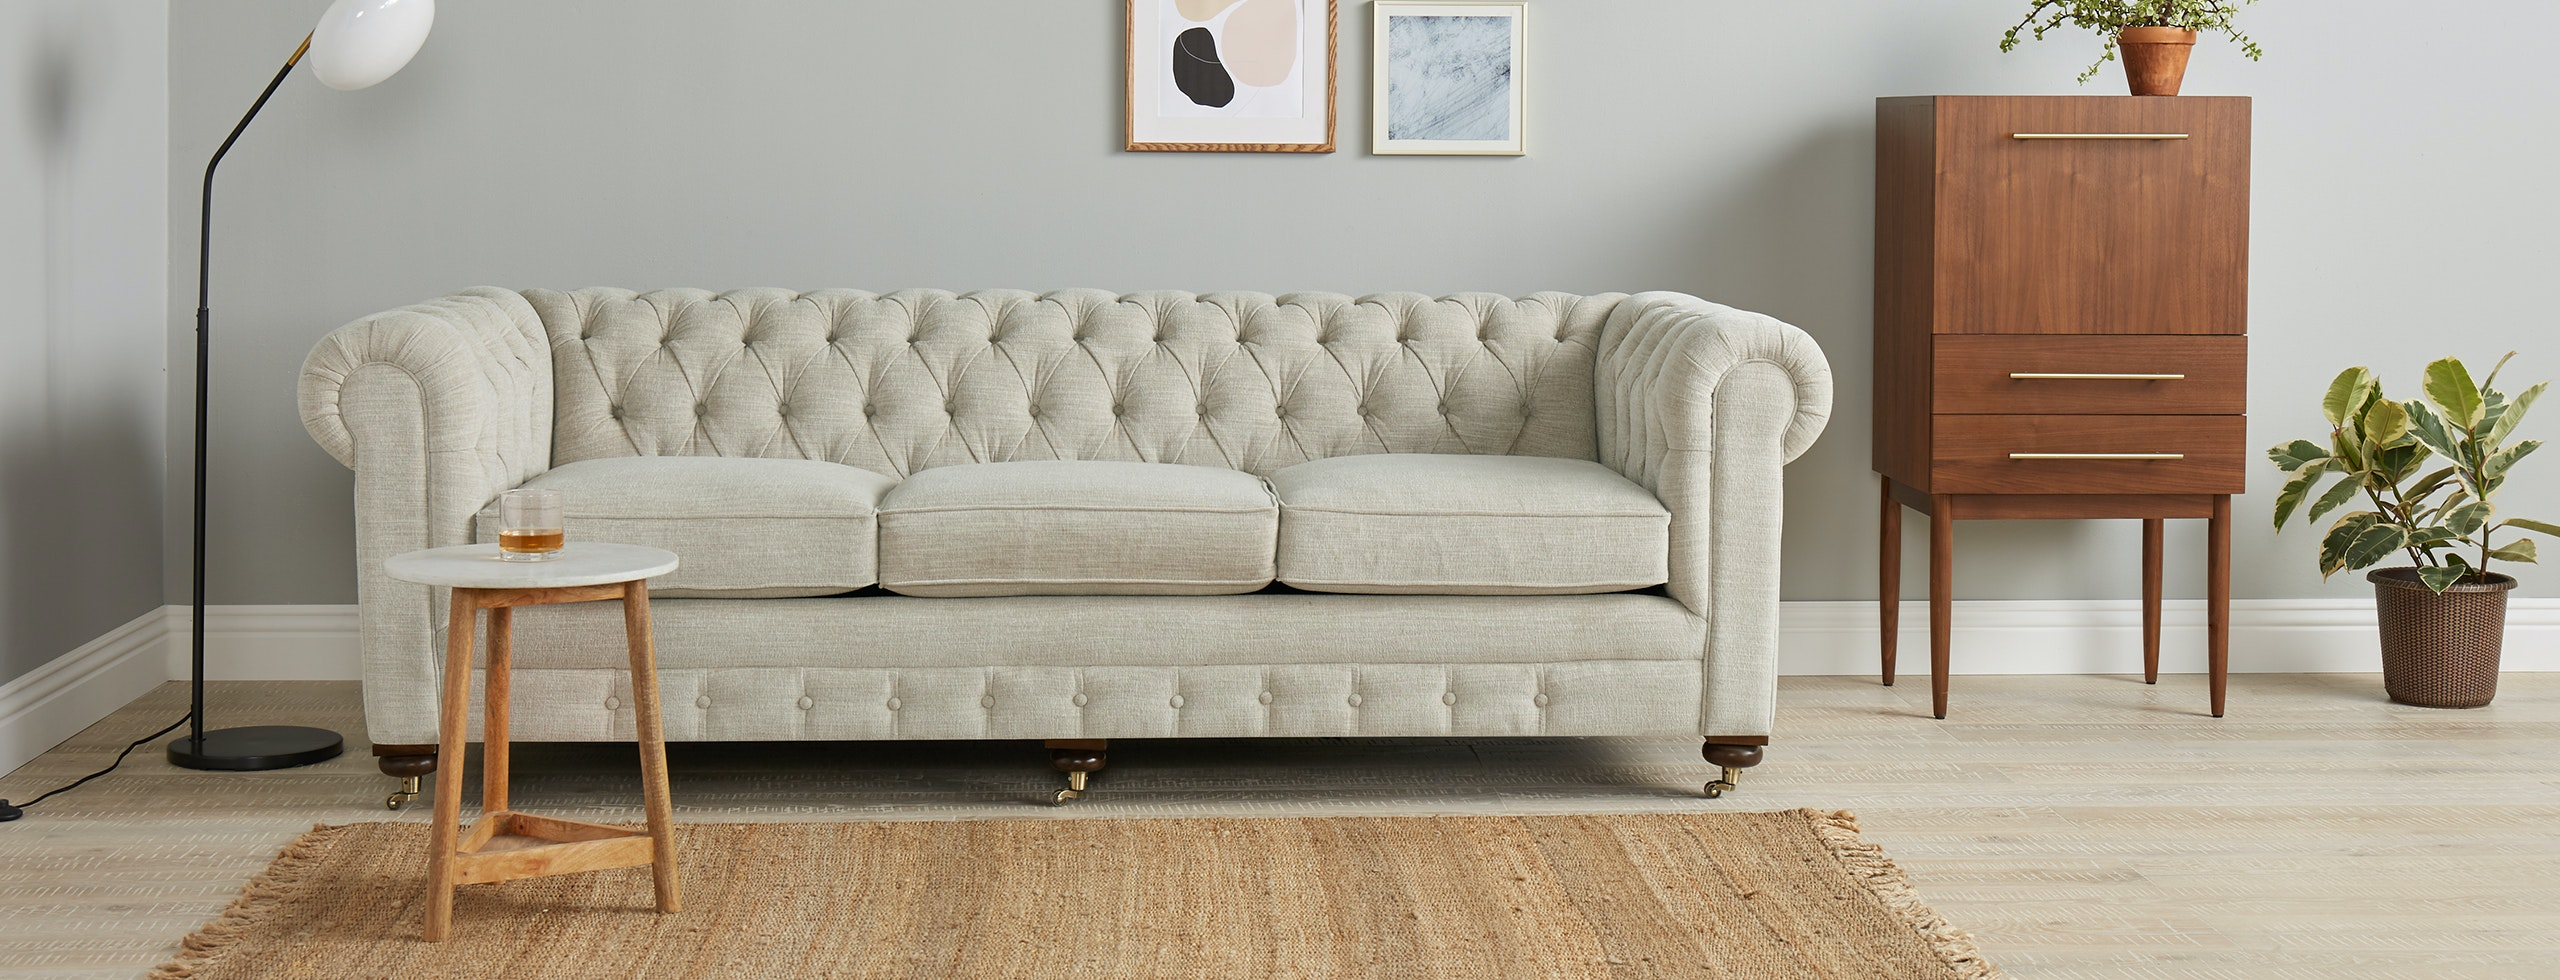 Sofa In Chesterfield Look Liam Sofa